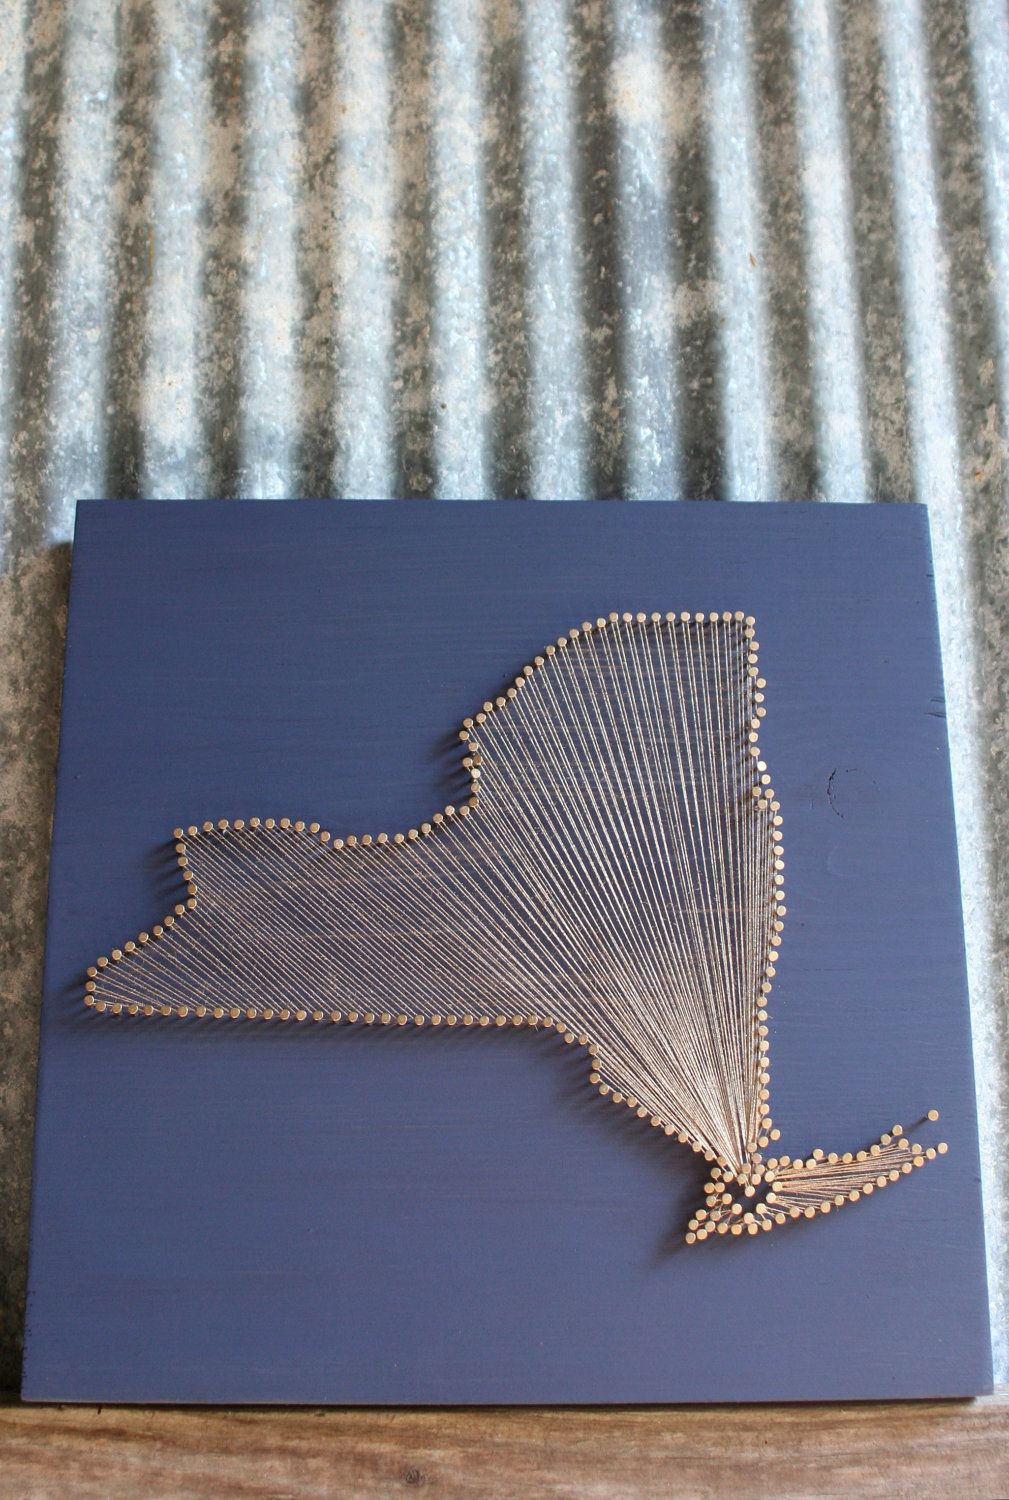 new york love reclaimed wood nail and string art. Black Bedroom Furniture Sets. Home Design Ideas